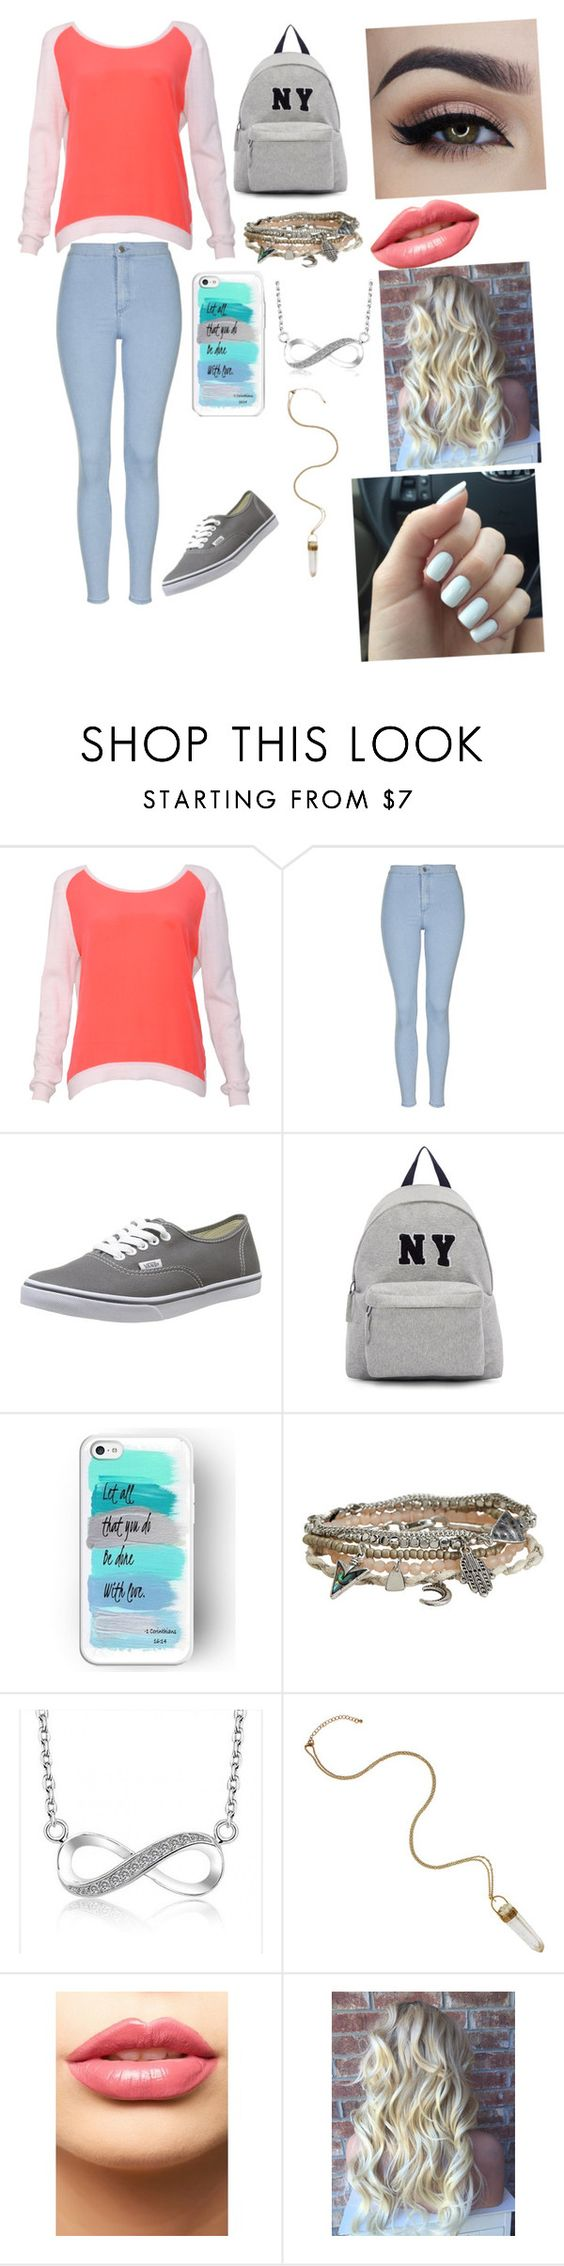 """""""Untitled #29"""" by lukehemmingsgirl851 ❤ liked on Polyvore featuring beauty, Sandro, Topshop, Vans, Joshua's, Aéropostale and LASplash"""